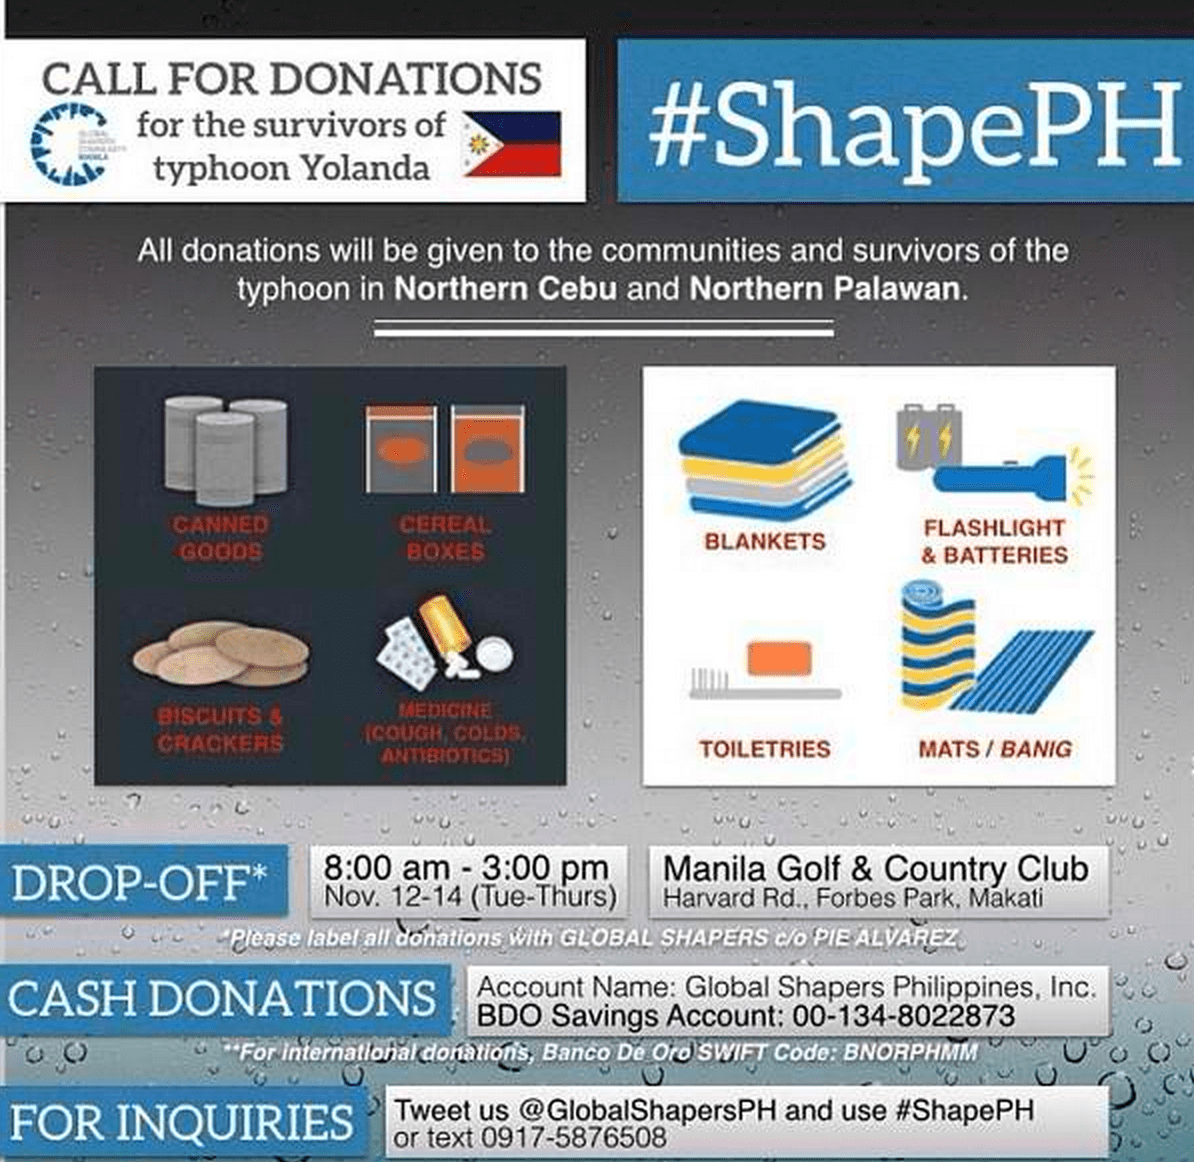 #ShapePH for Donations